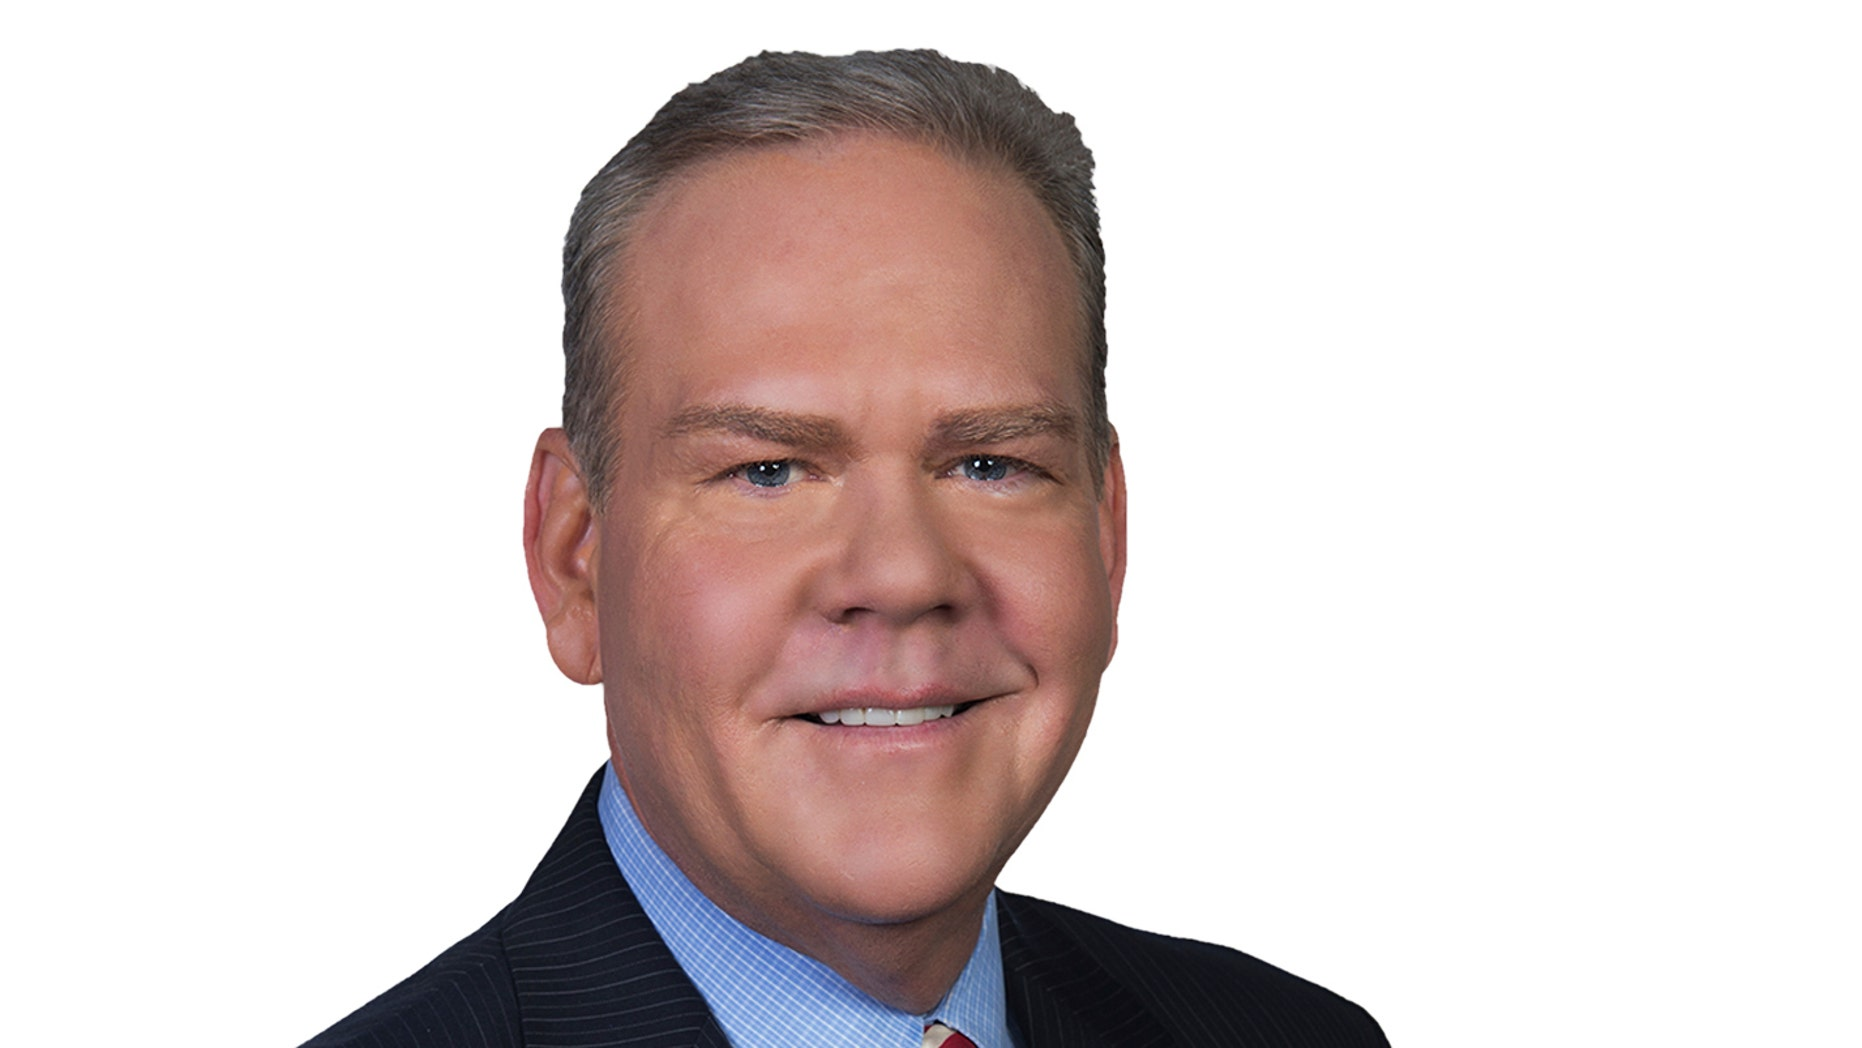 In this undated photo made available by WPLG local 10 station shows weekend anchor Todd Tongen. The weekend news anchor at Miami TV station WPLG has died at 56. Tongan worked at the news station for nearly three decades. Tongen was found dead in his home. (WPLG via AP)